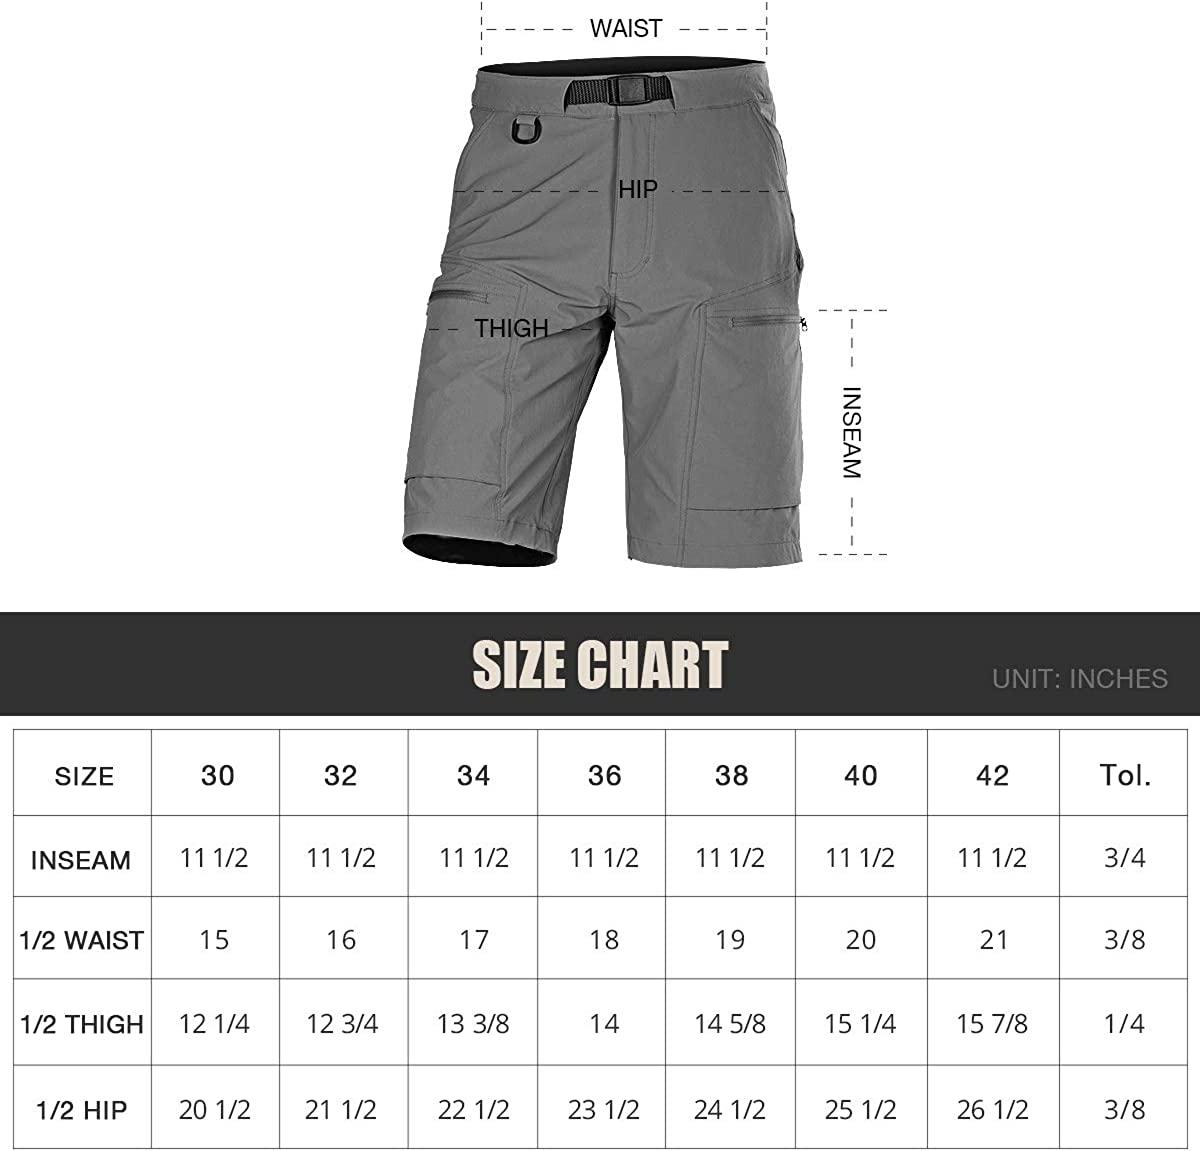 FREE SOLDIER Mens Lightweight Breathable Quick Dry Tactical Shorts Hiking Cargo Shorts Nylon Spandex